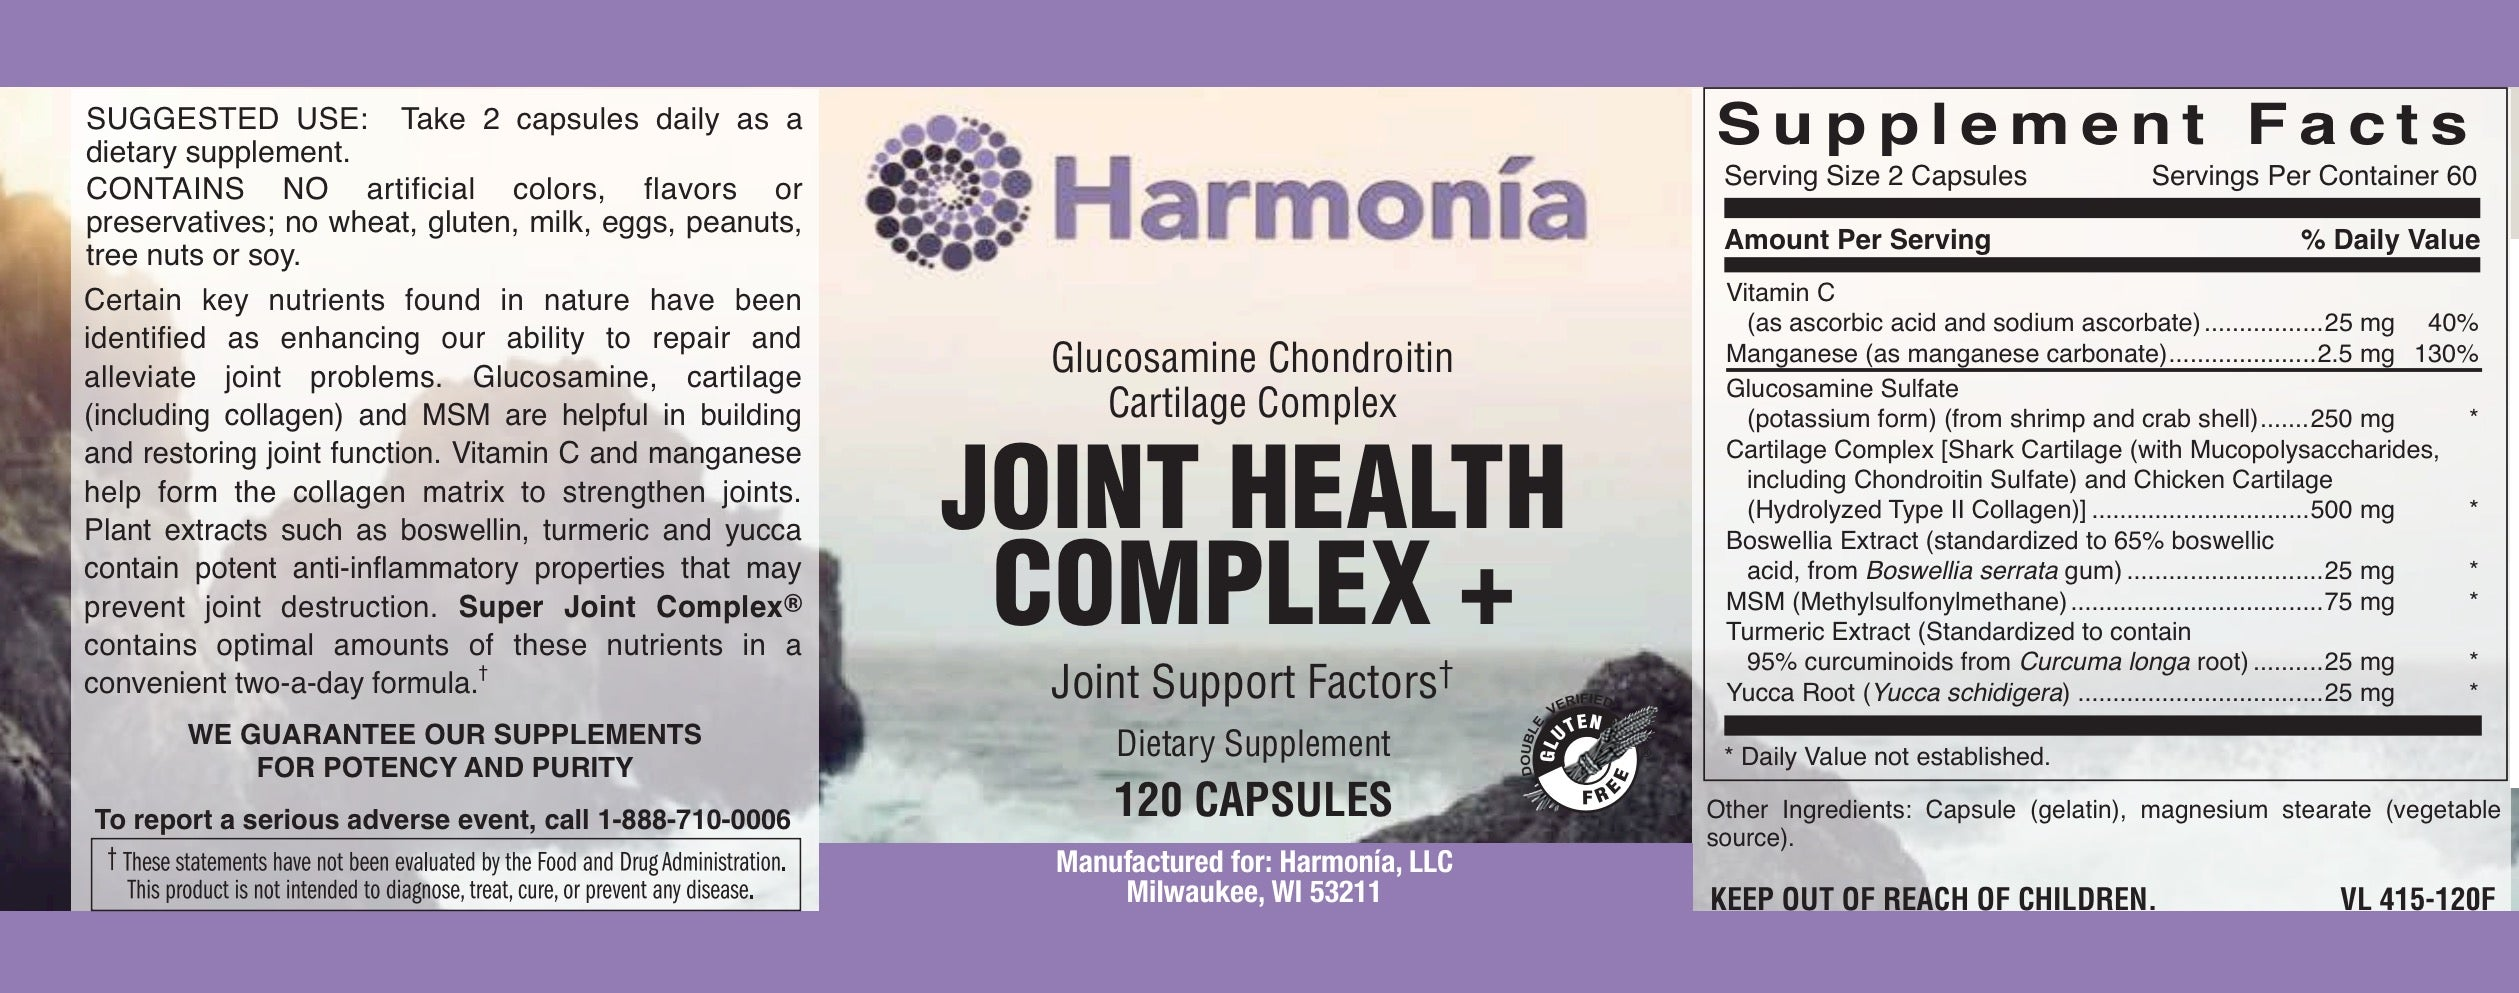 Joint Health Complex +